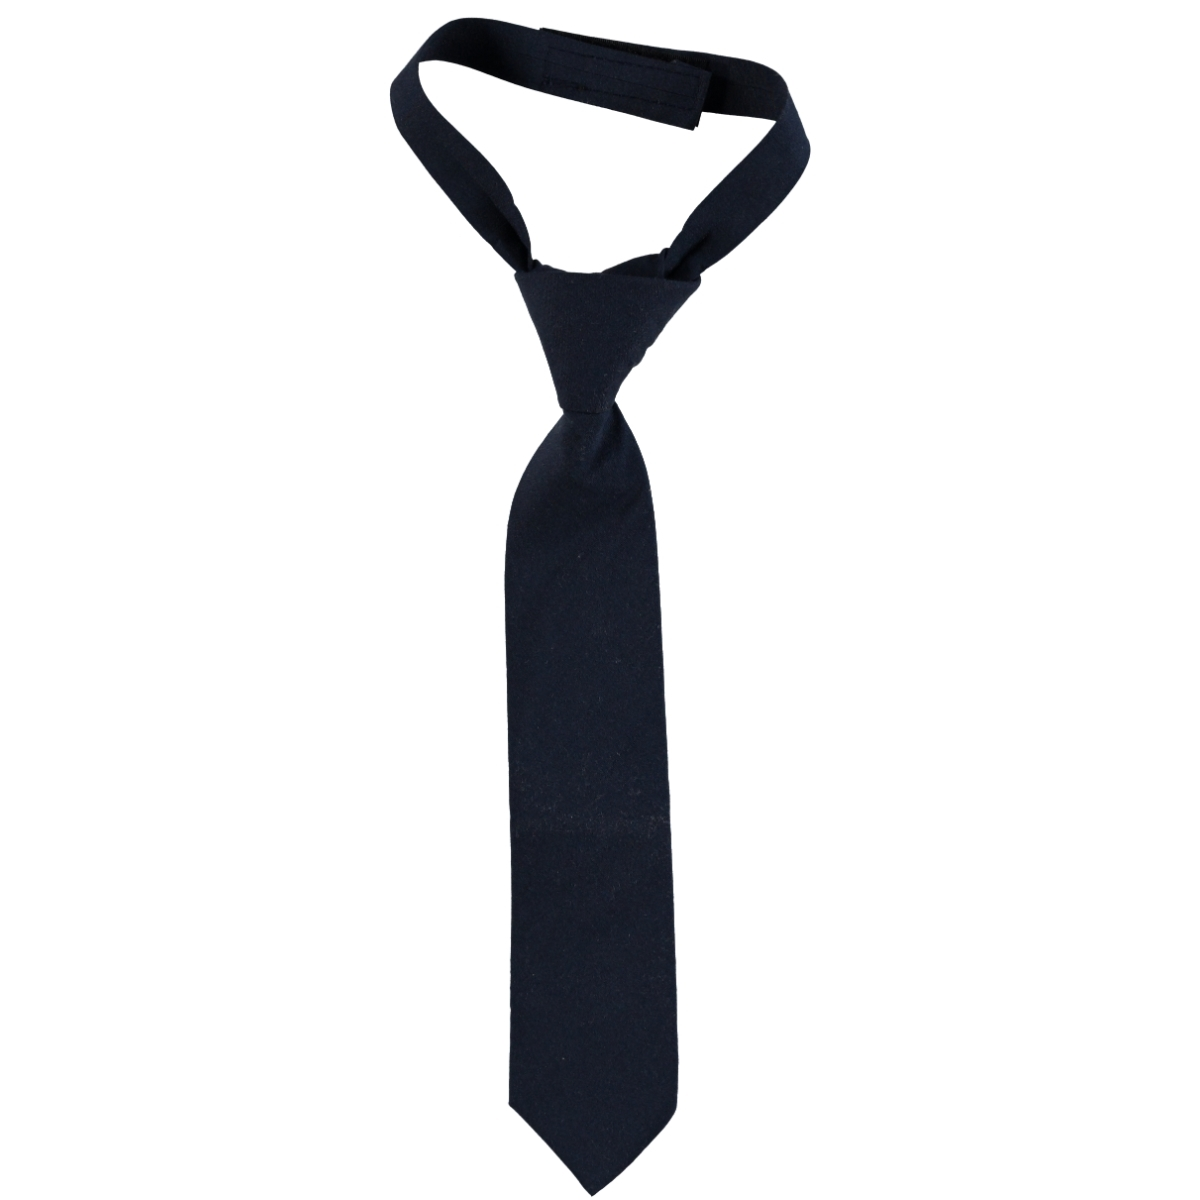 Civil Boy's Plain Satin Tie, Dark Blue With The Ages Of 2-8